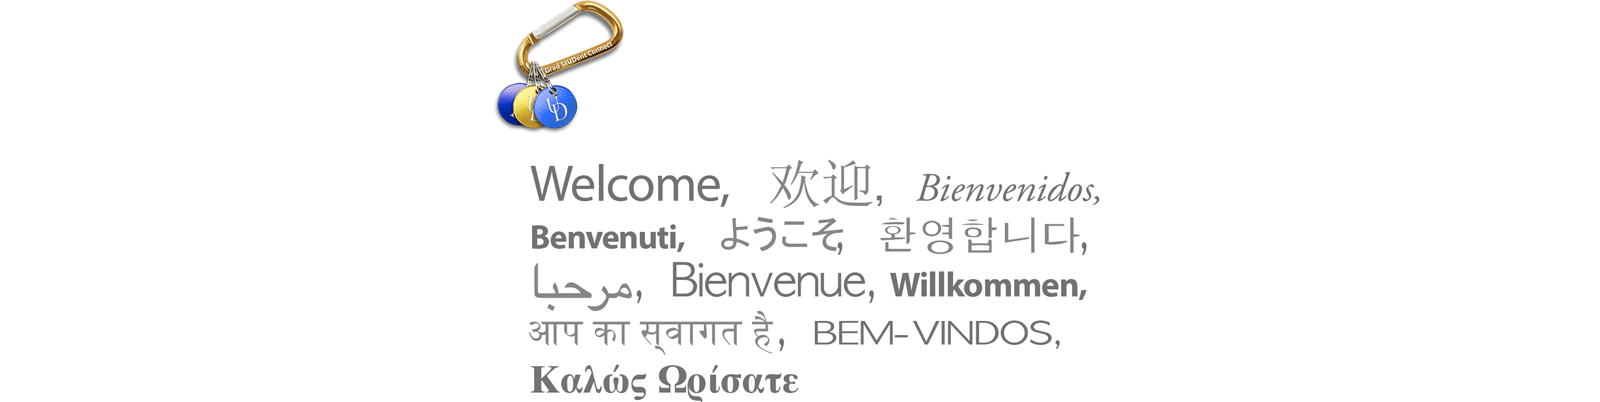 Welcome: NGSO 2019